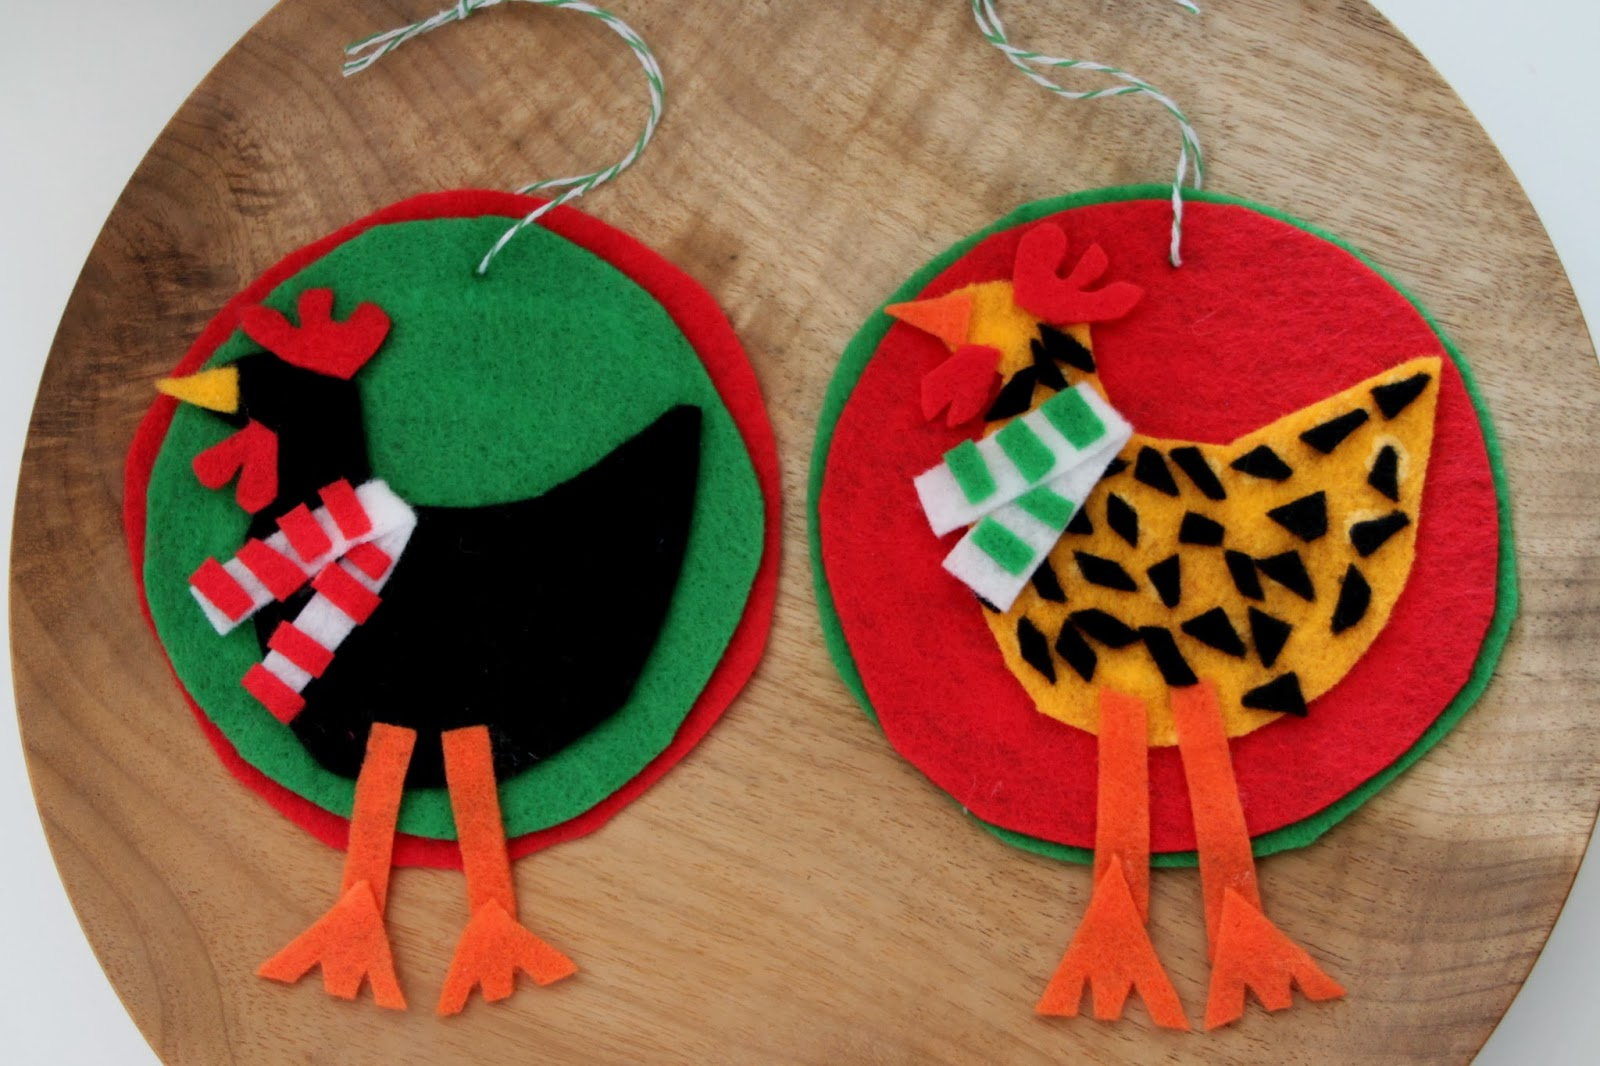 DIY Felt Chicken Christmas Ornaments | Tilly's Nest